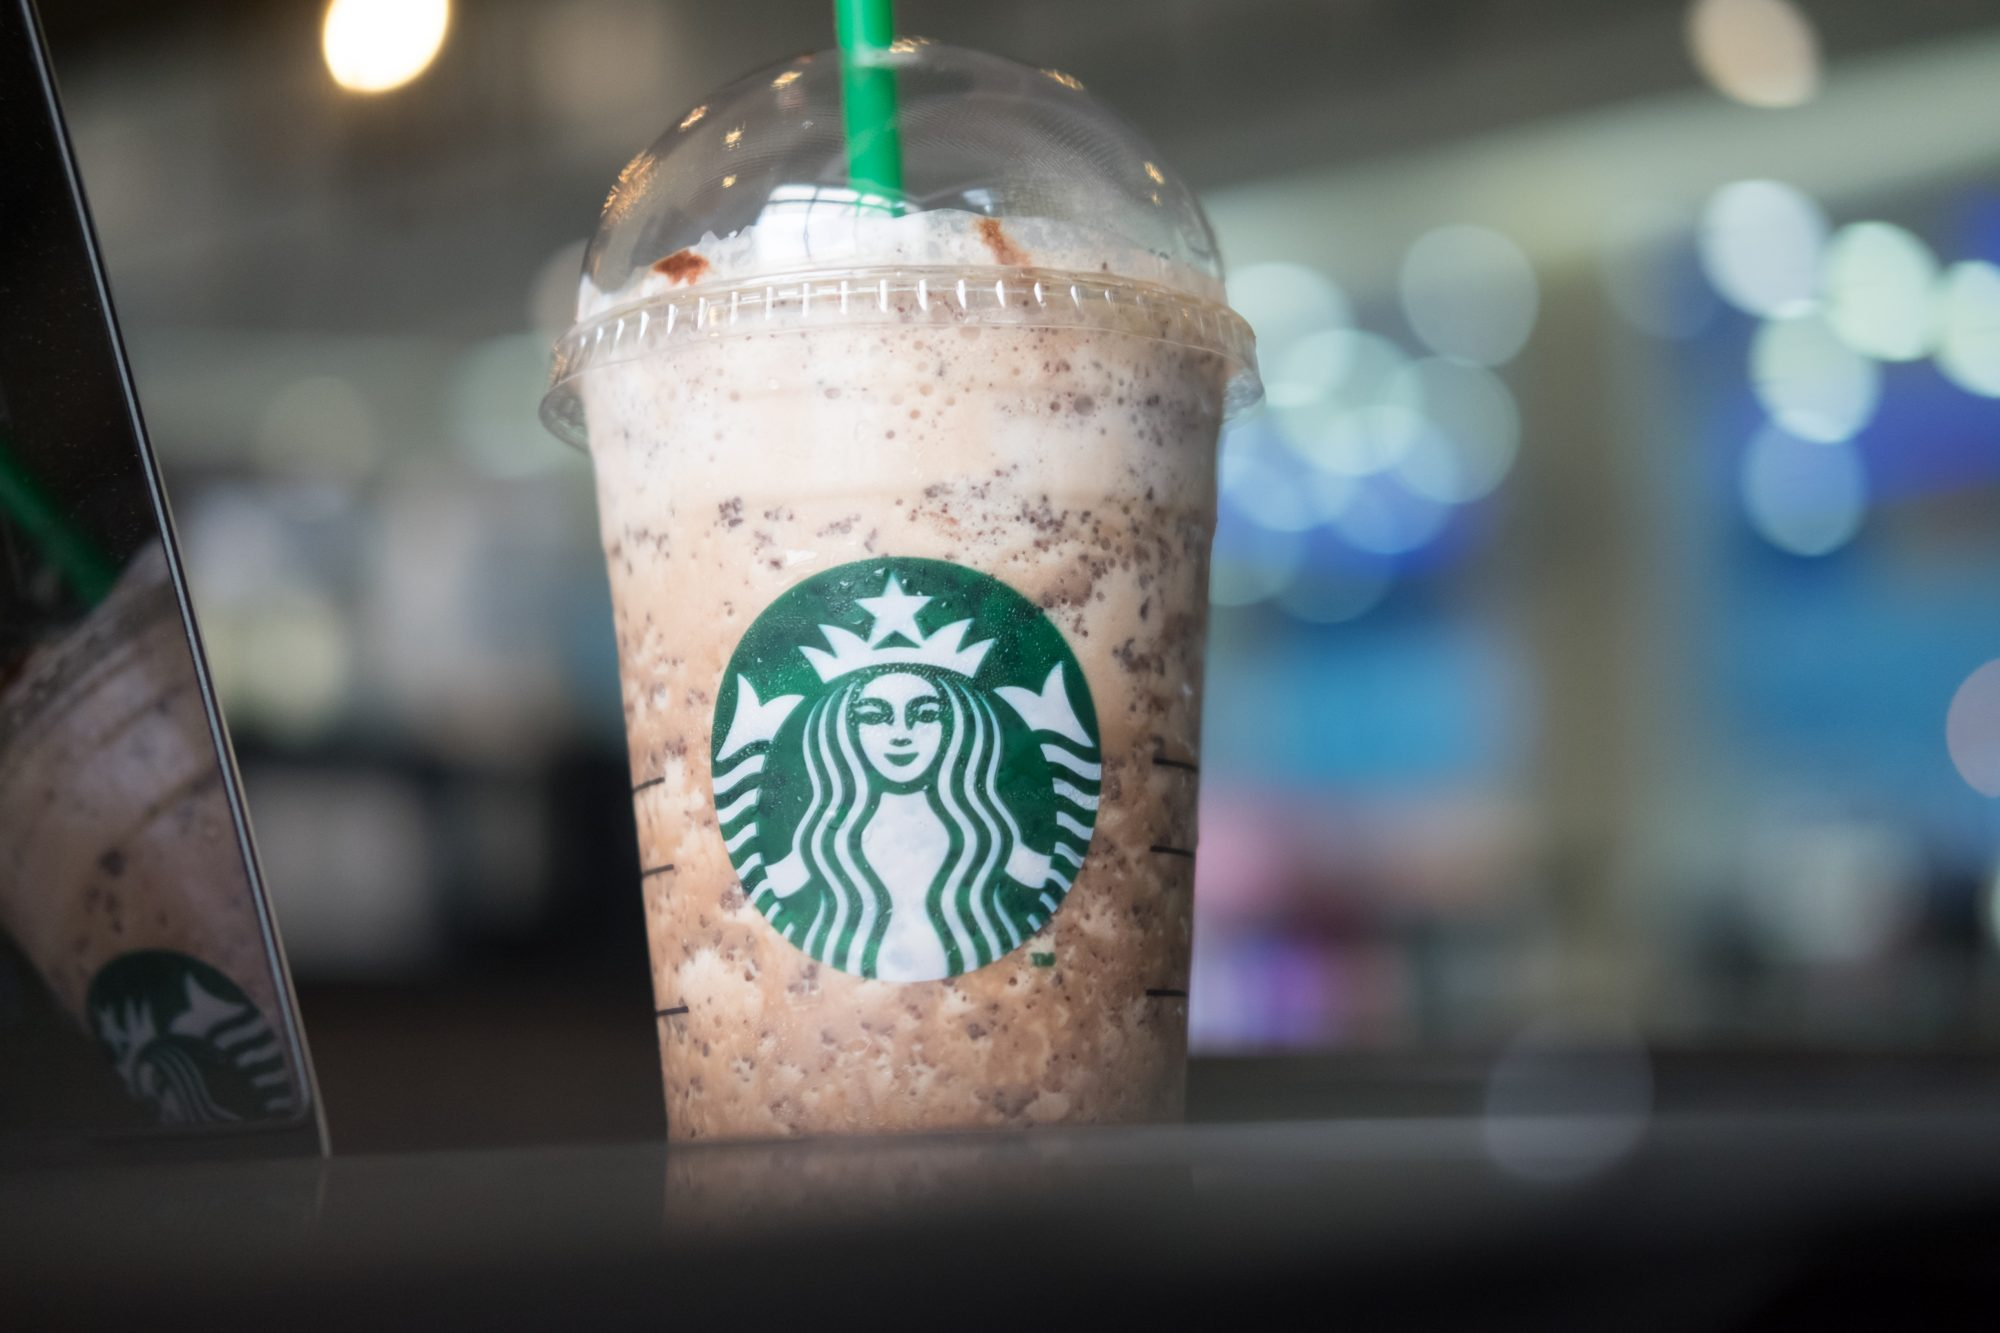 Starbucks Frappuccinos are coffee drinks blended